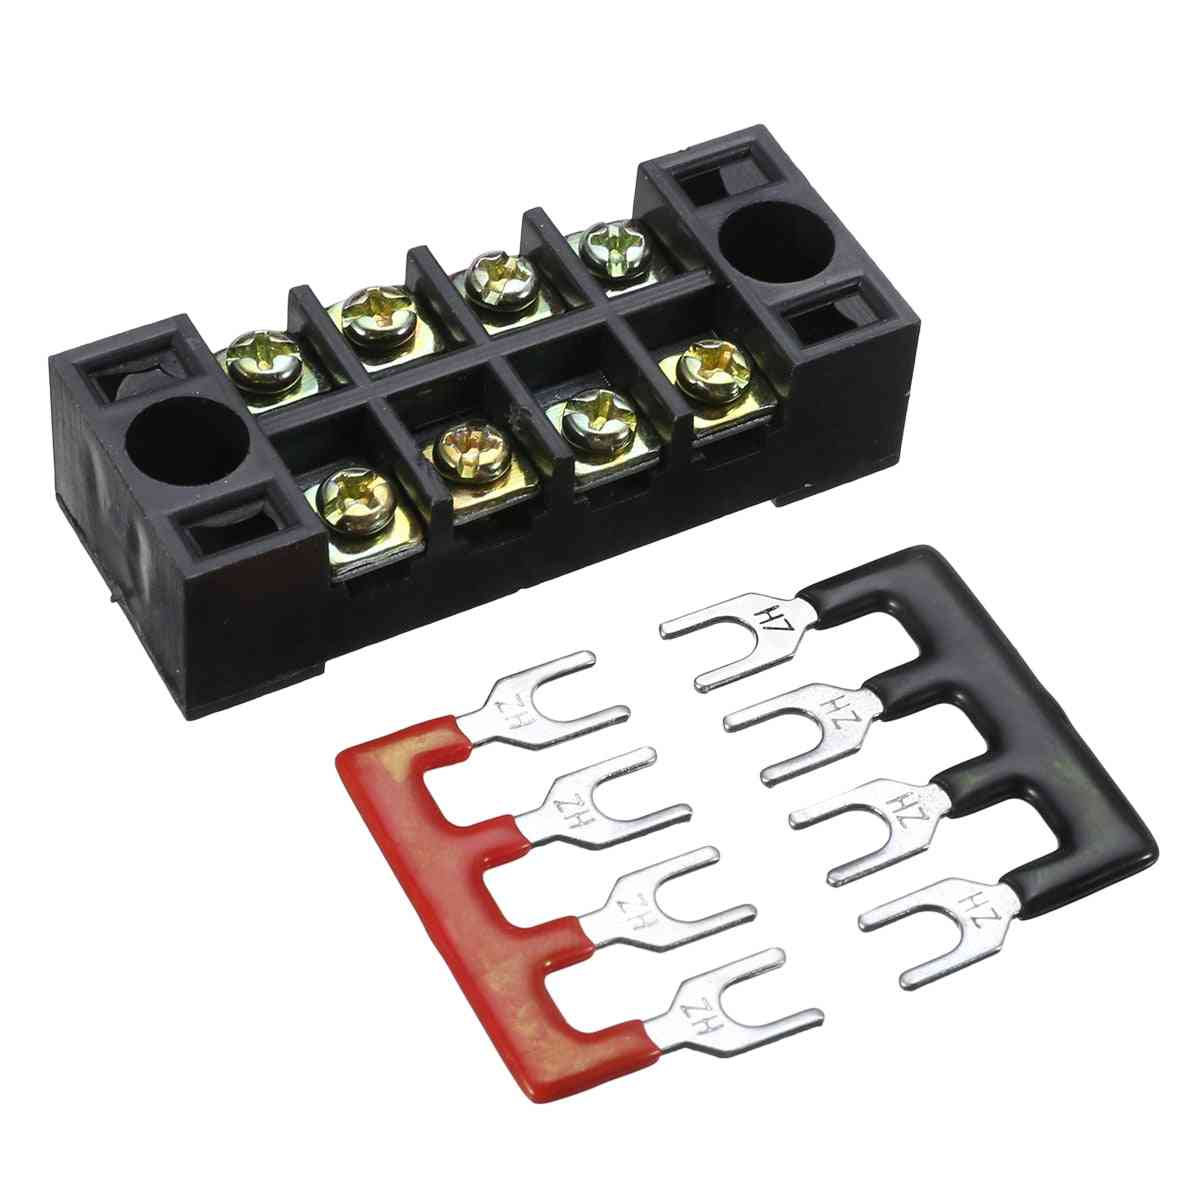 600v ,15a .4p- Dual Row Wire Barrier Terminal Block With 2 Connector Strips